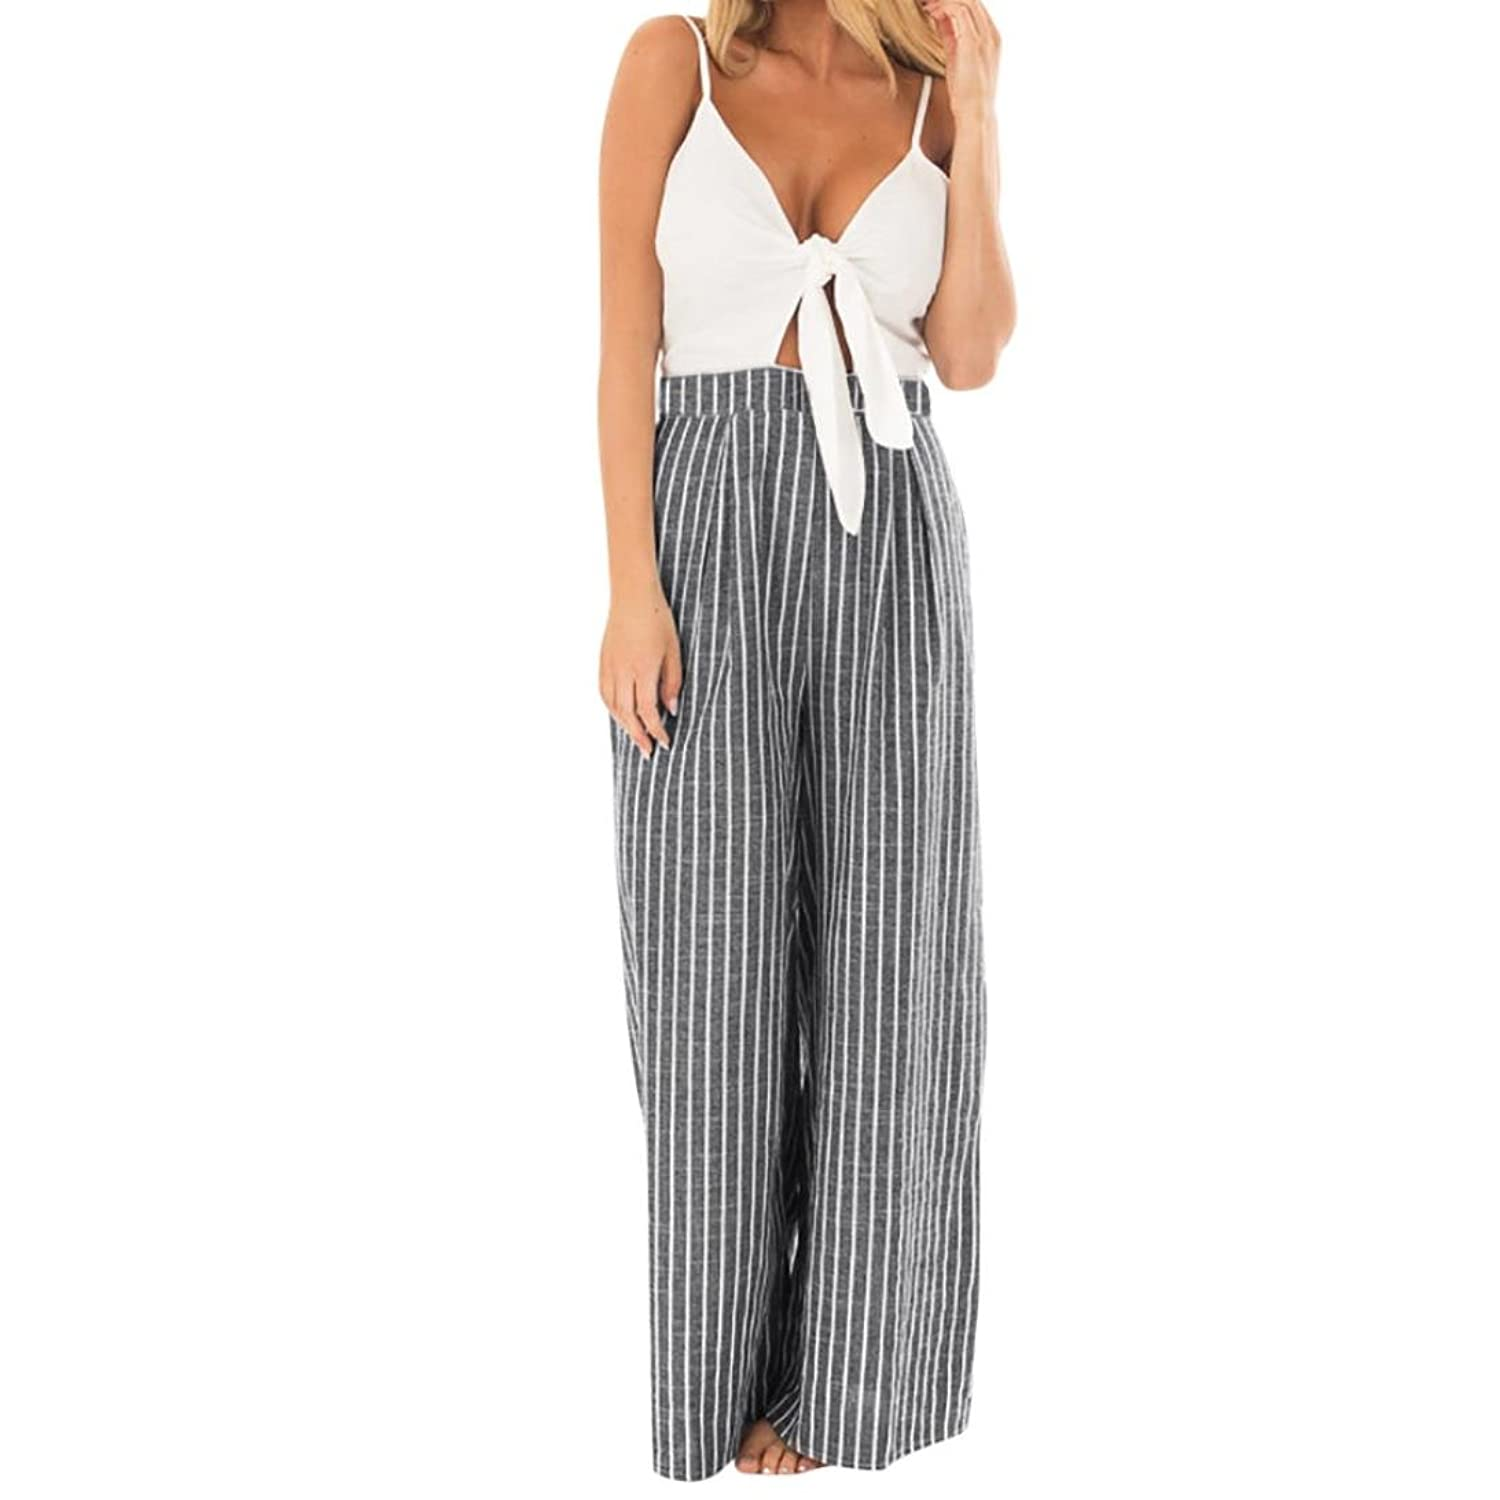 5c3b1a9bee9b About  Striped jumpsuits ❦ Sling rompers wide leg playsuits long pants  bandage bodysuits striped rompers sling playsuits wide leg pants long  bodysuits ...